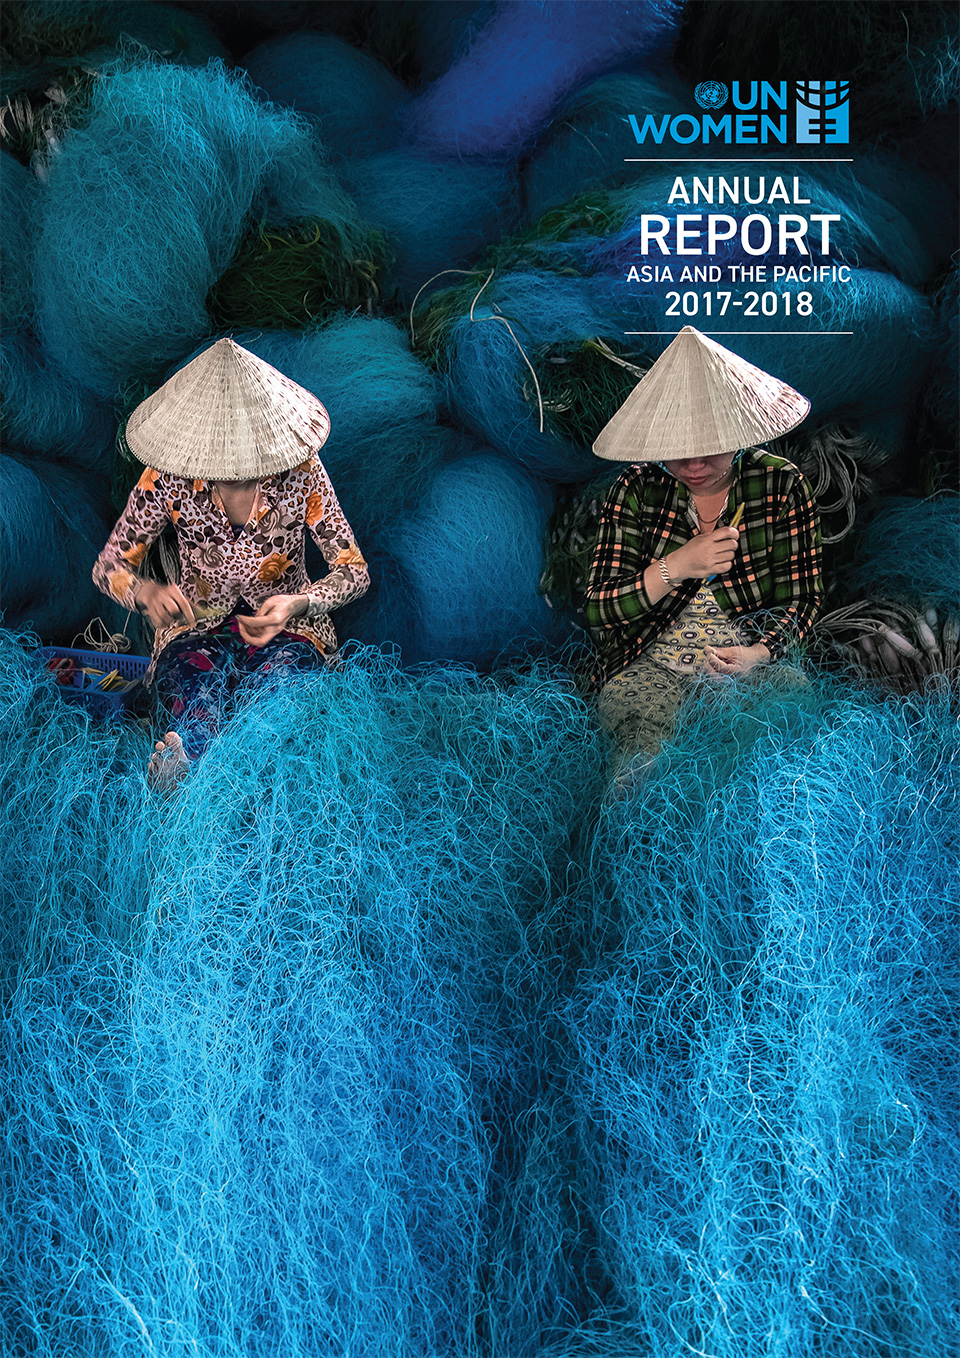 UN Women Asia and the Pacific Annual Report 2017-2018